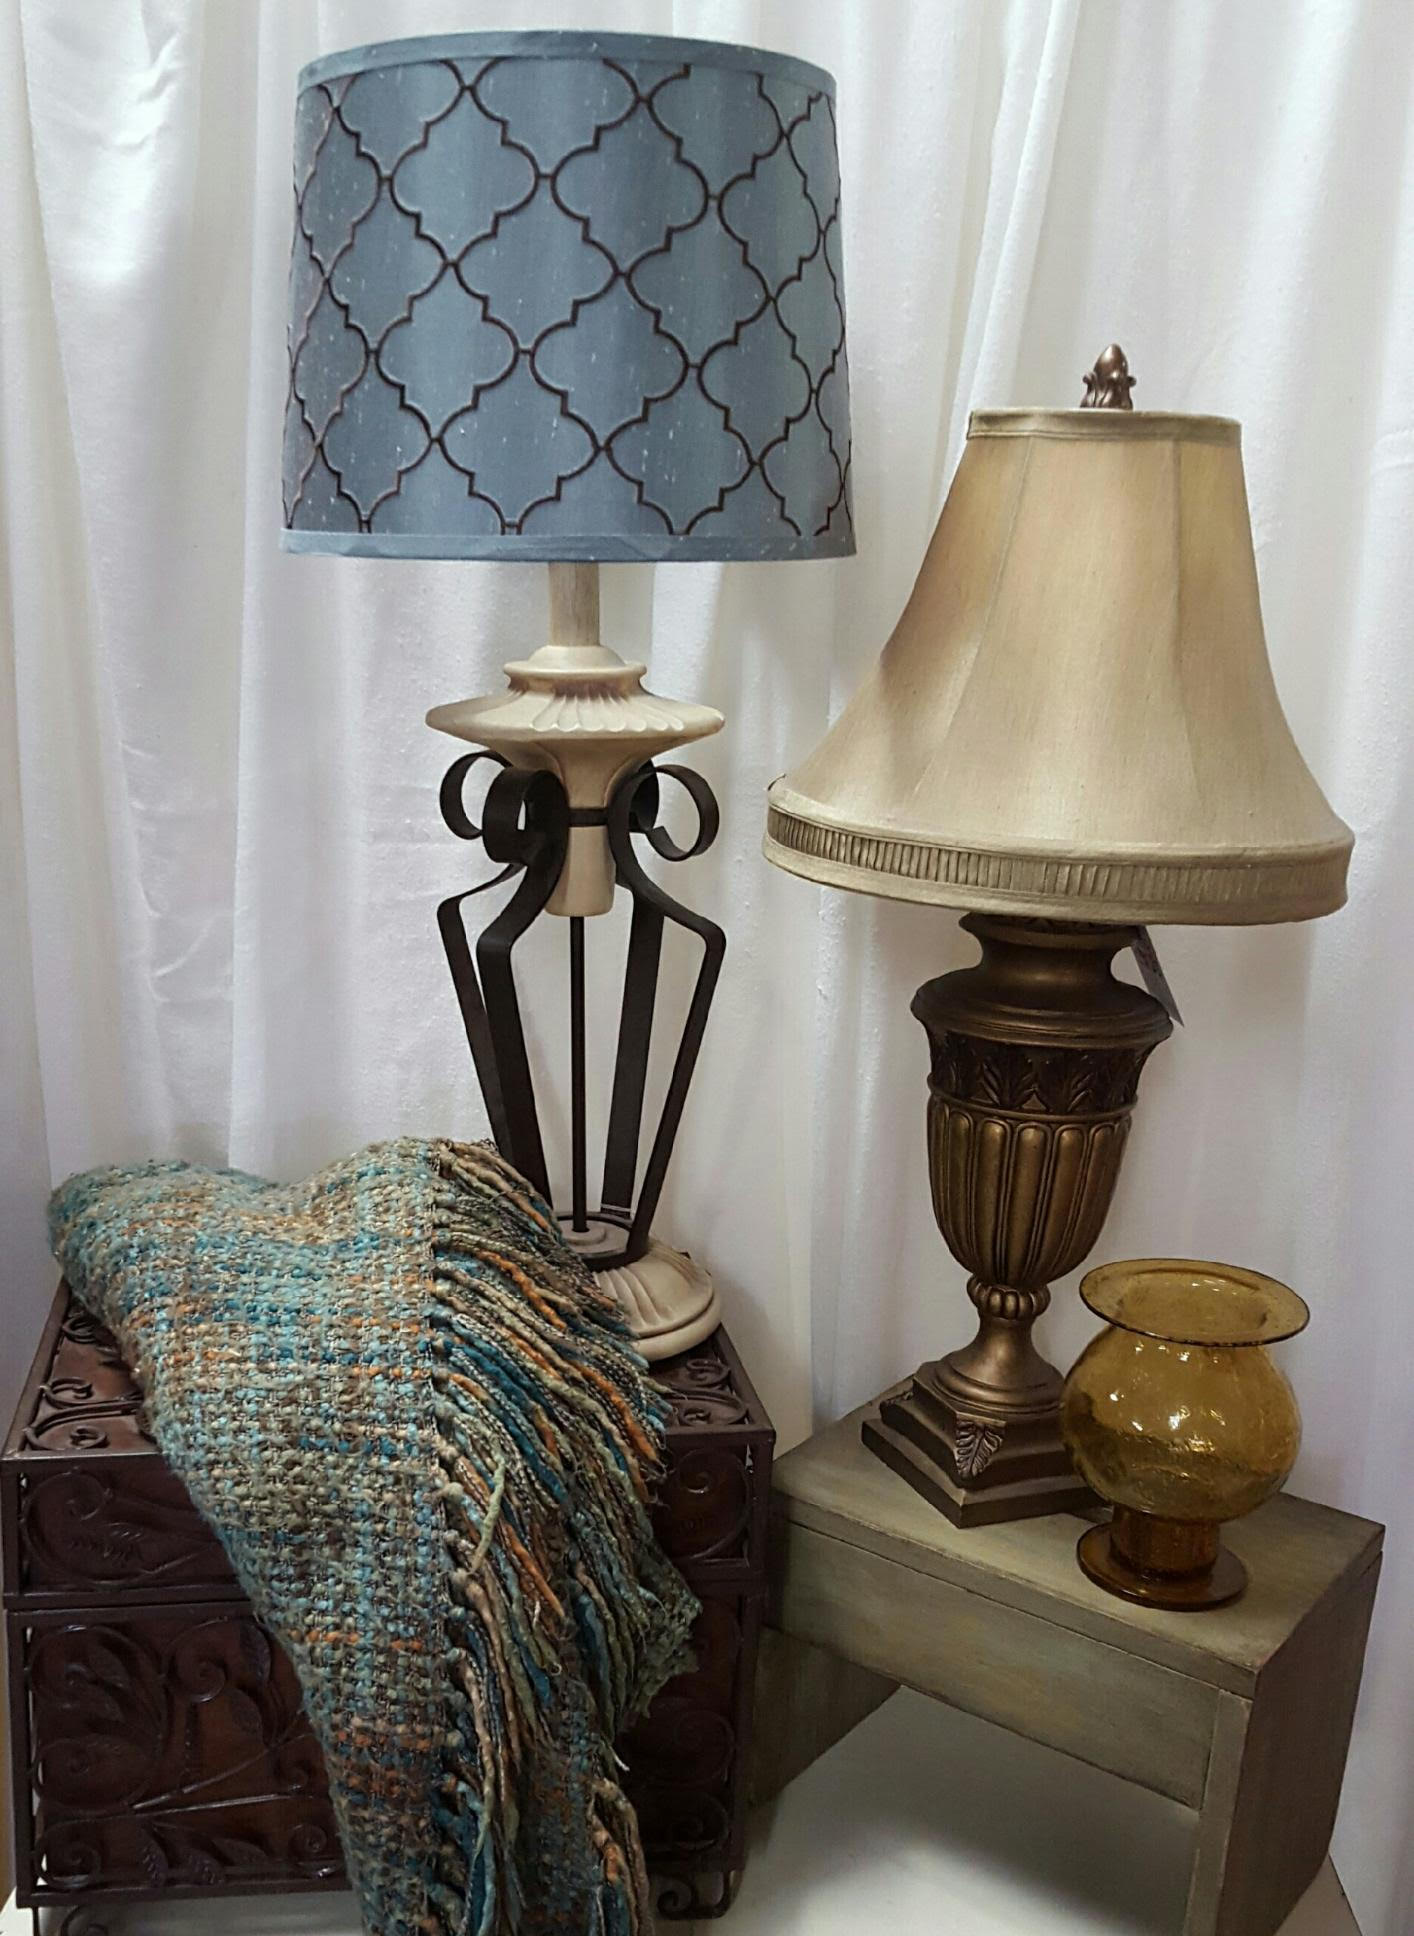 Lamps & throw